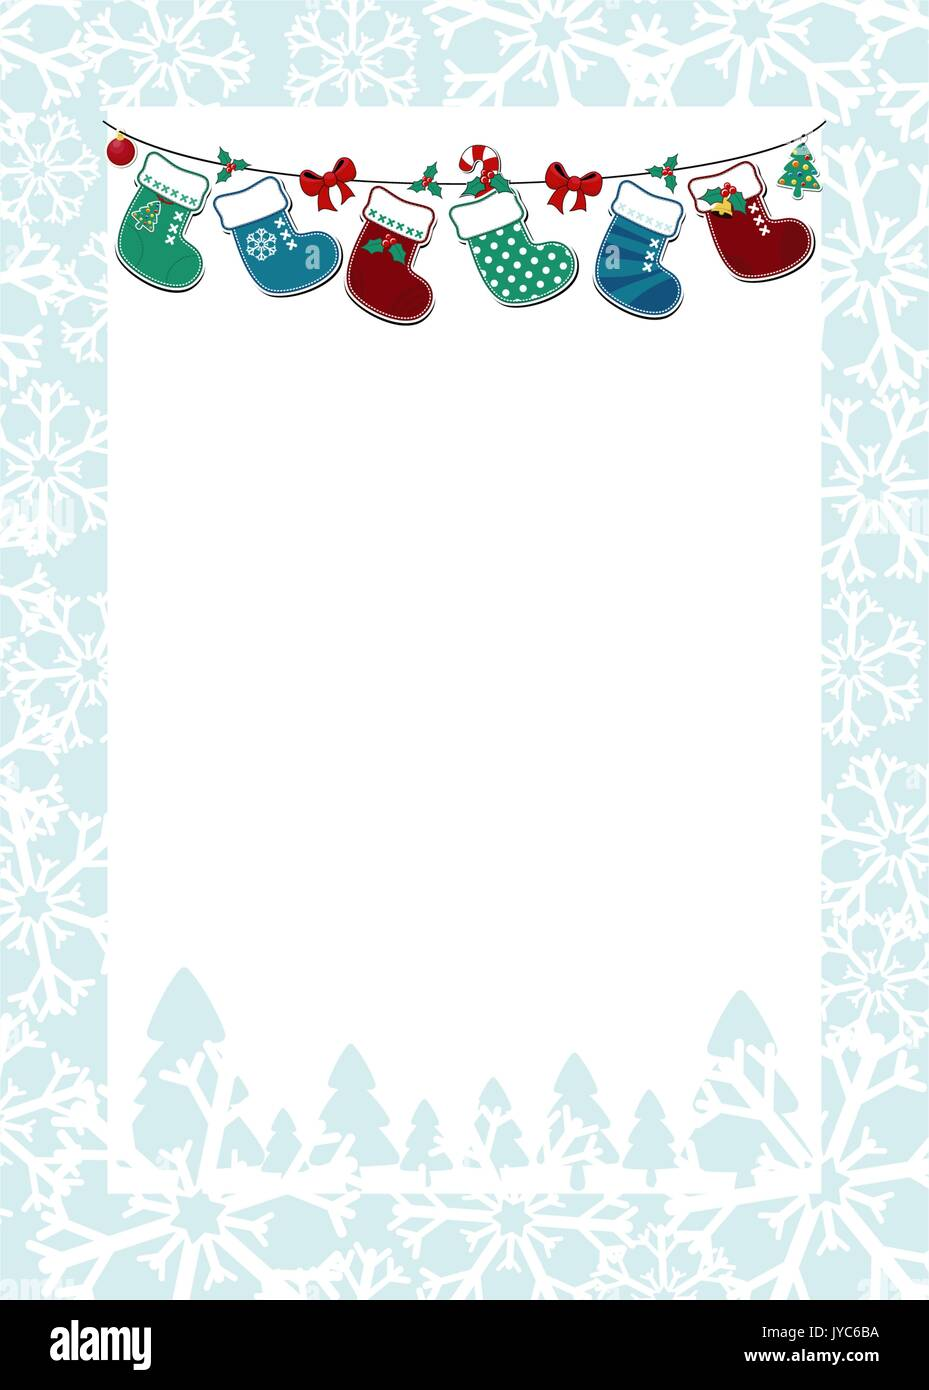 Christmas Frame With Hanging Socks And White Background For Your